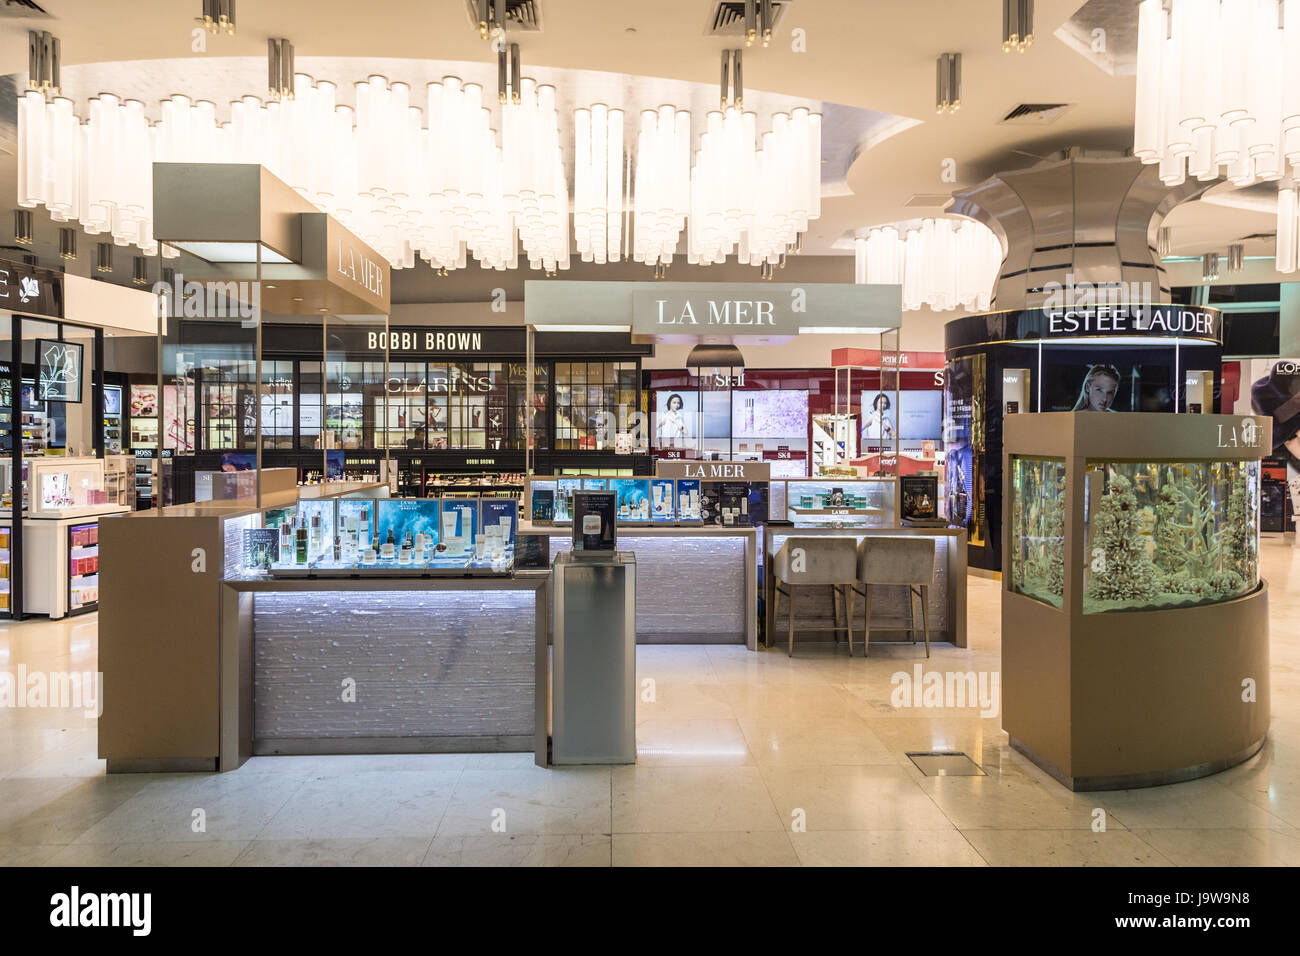 KUALA LUMPUR, MALAYSIA - MAY 19, 2017: Duty free beauty products such as make up and perfumes are displayed in a - Stock Image